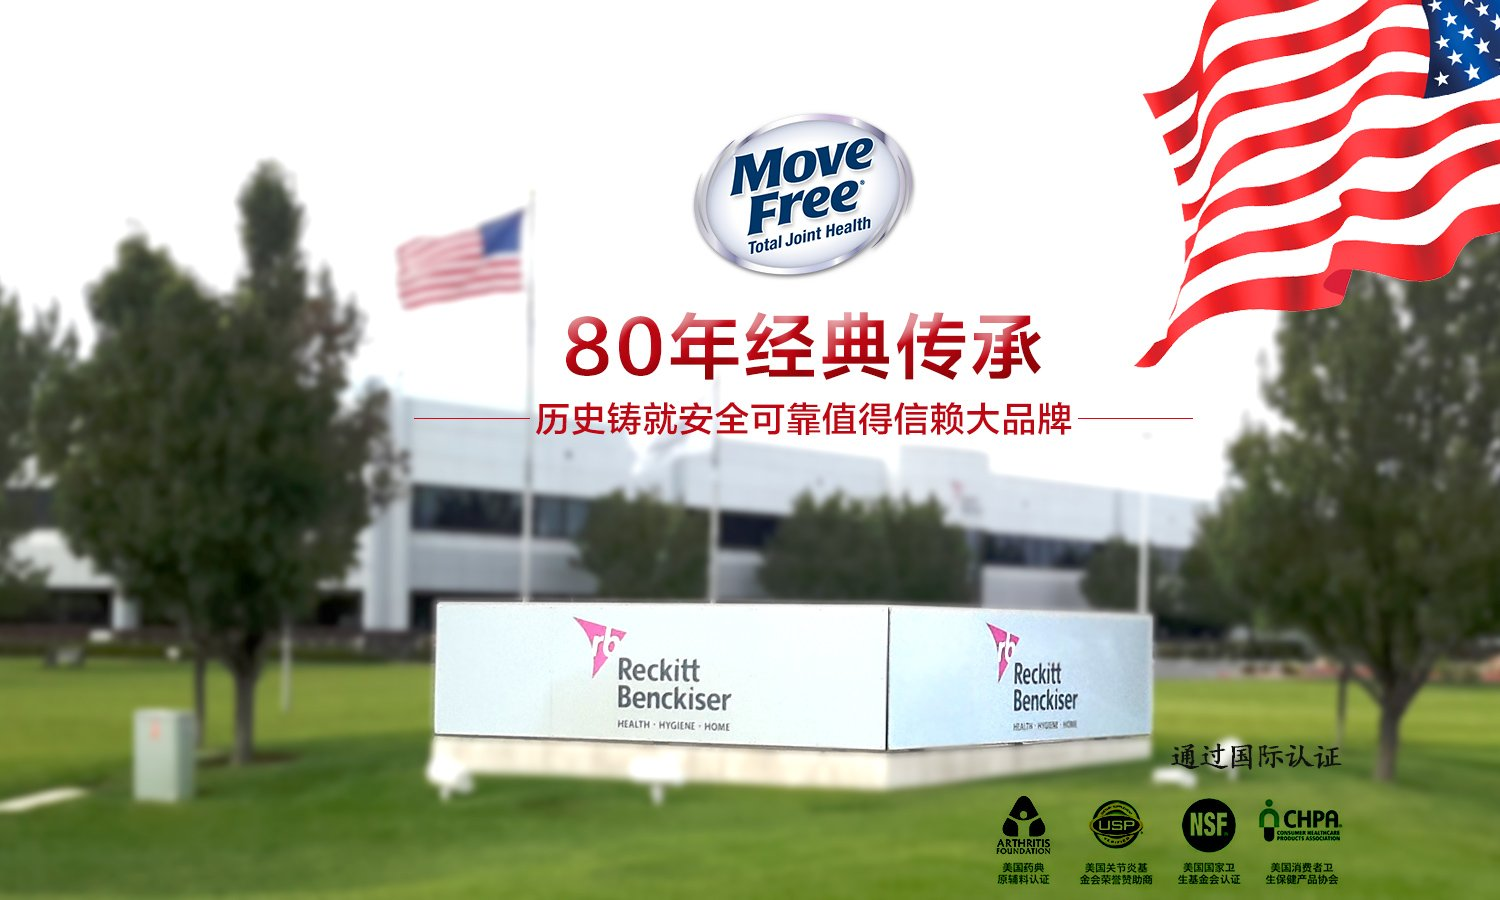 xuefangp/movefree/7brand